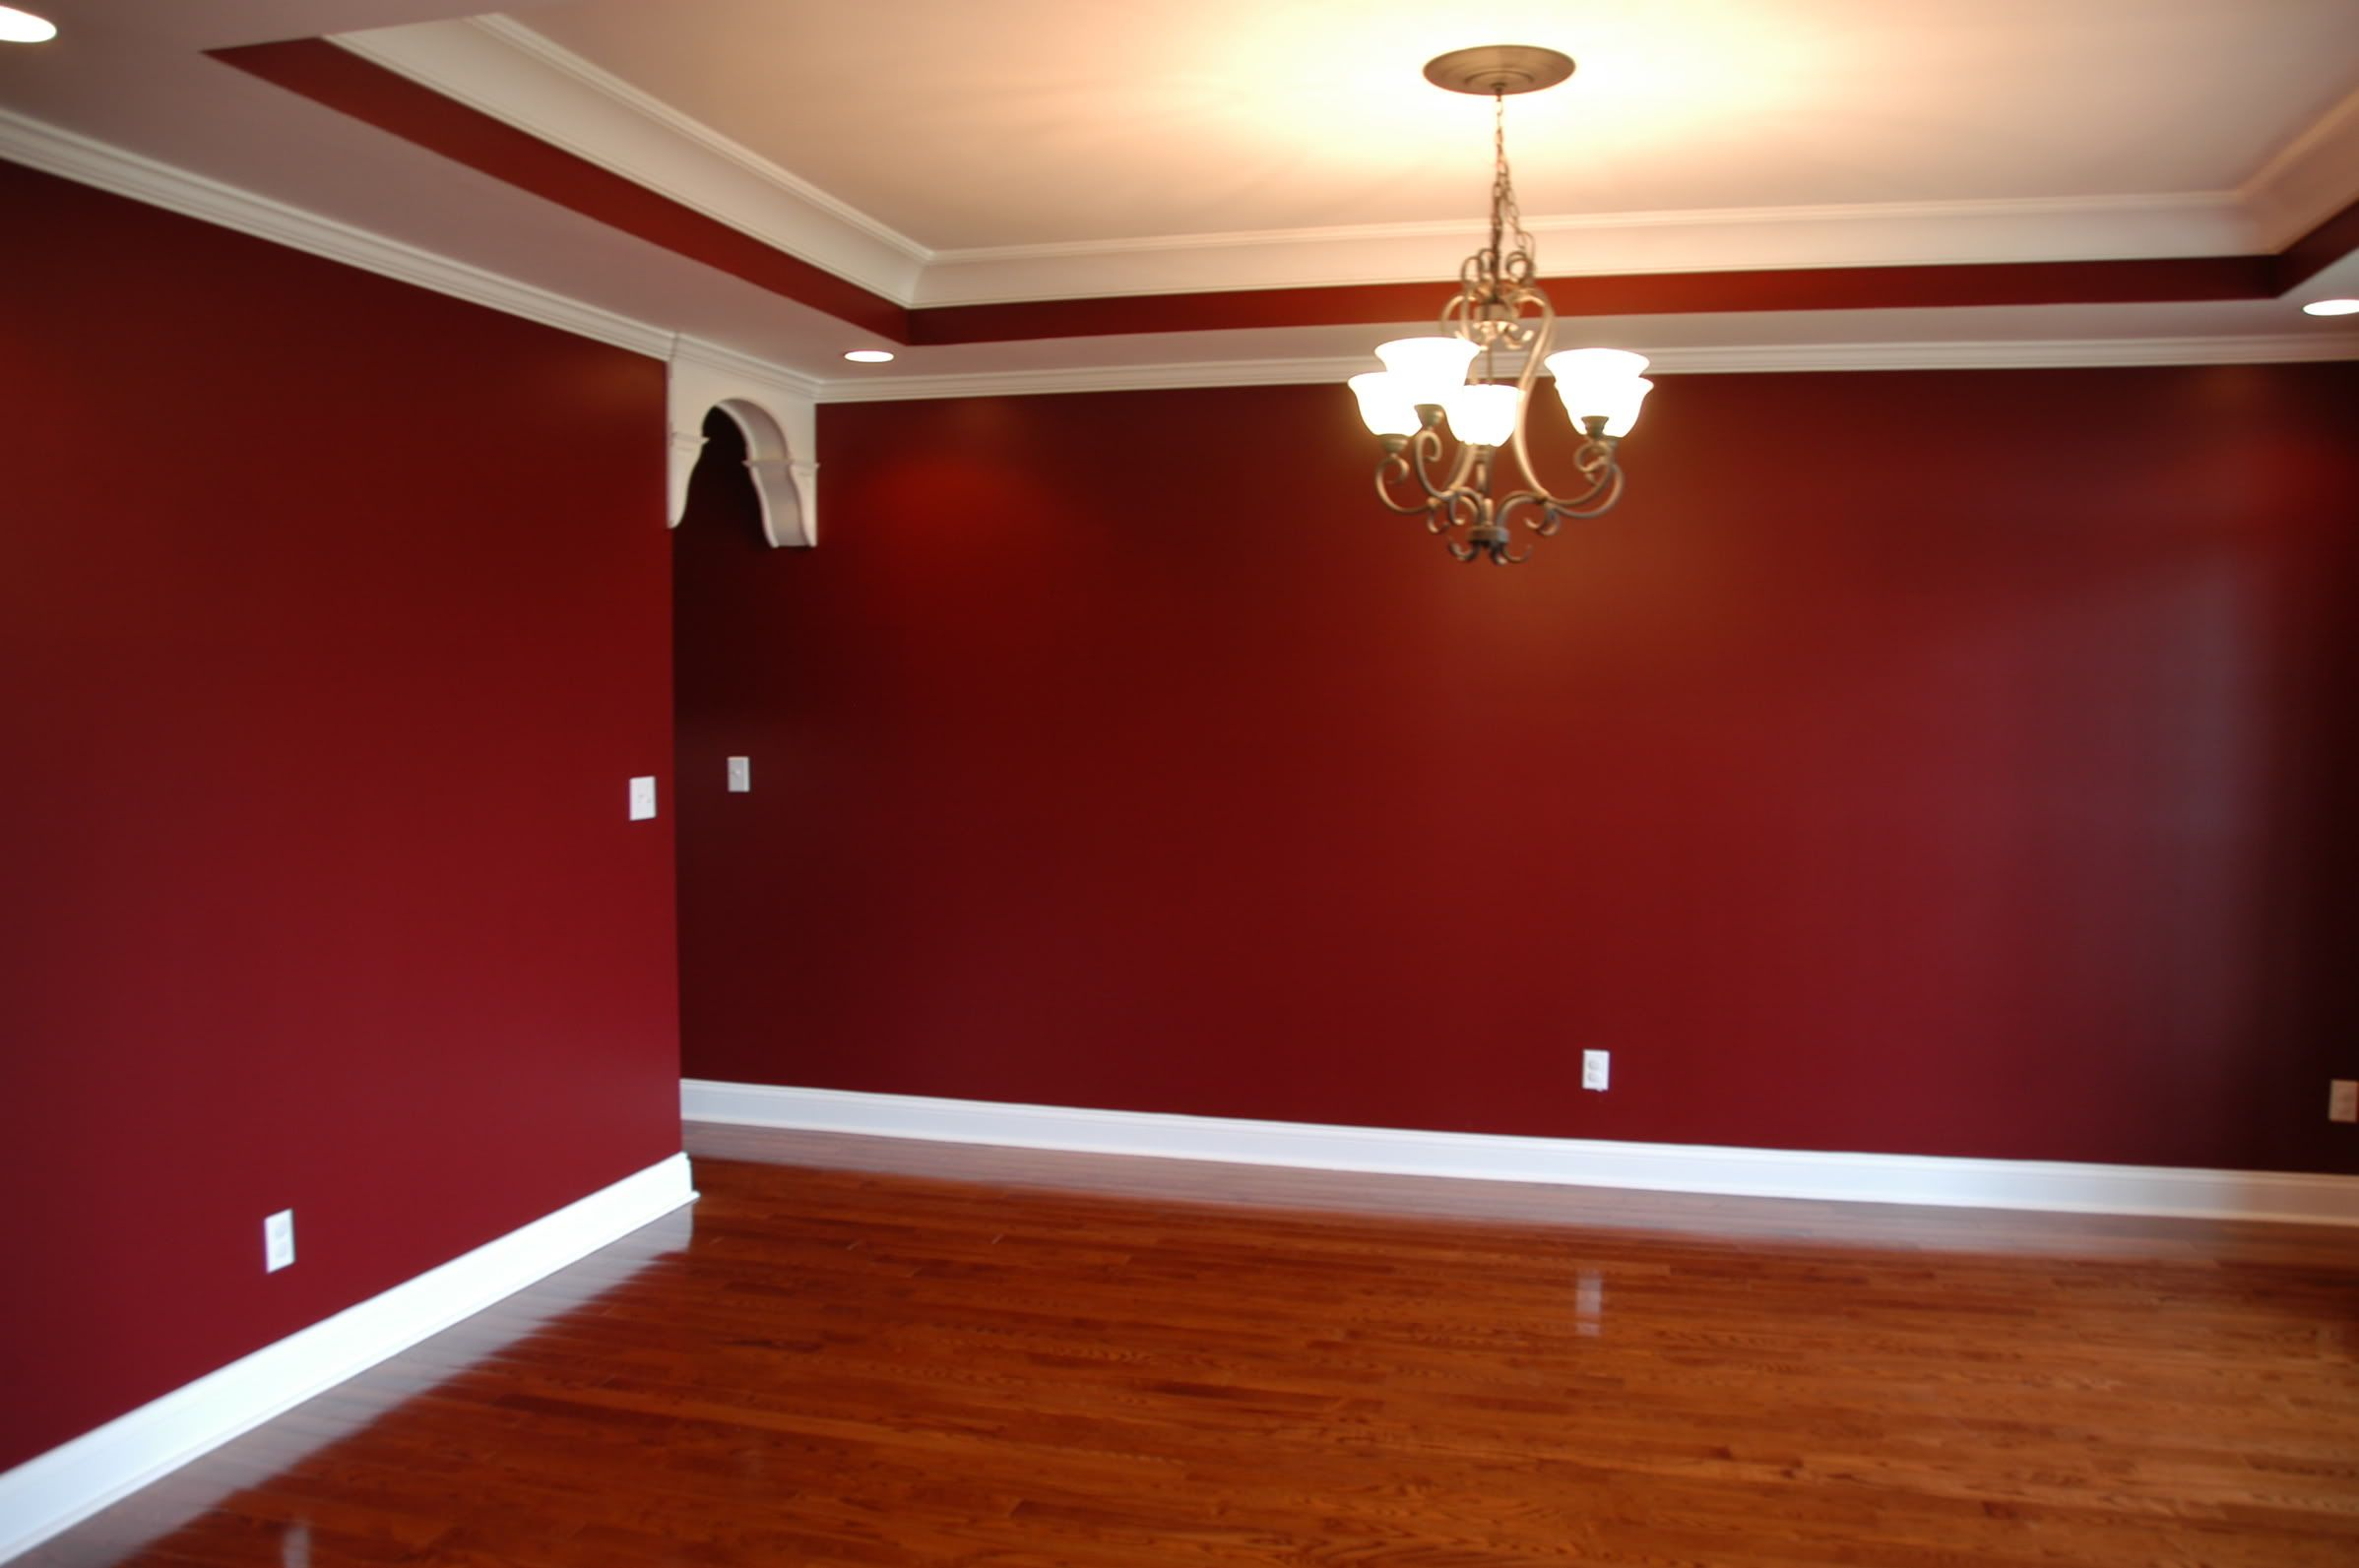 How To Stencil A Wall Dining Room Project Red Bedroom Walls Living Room Decor Brown Couch Red Living Room Walls #red #and #gray #color #scheme #living #room